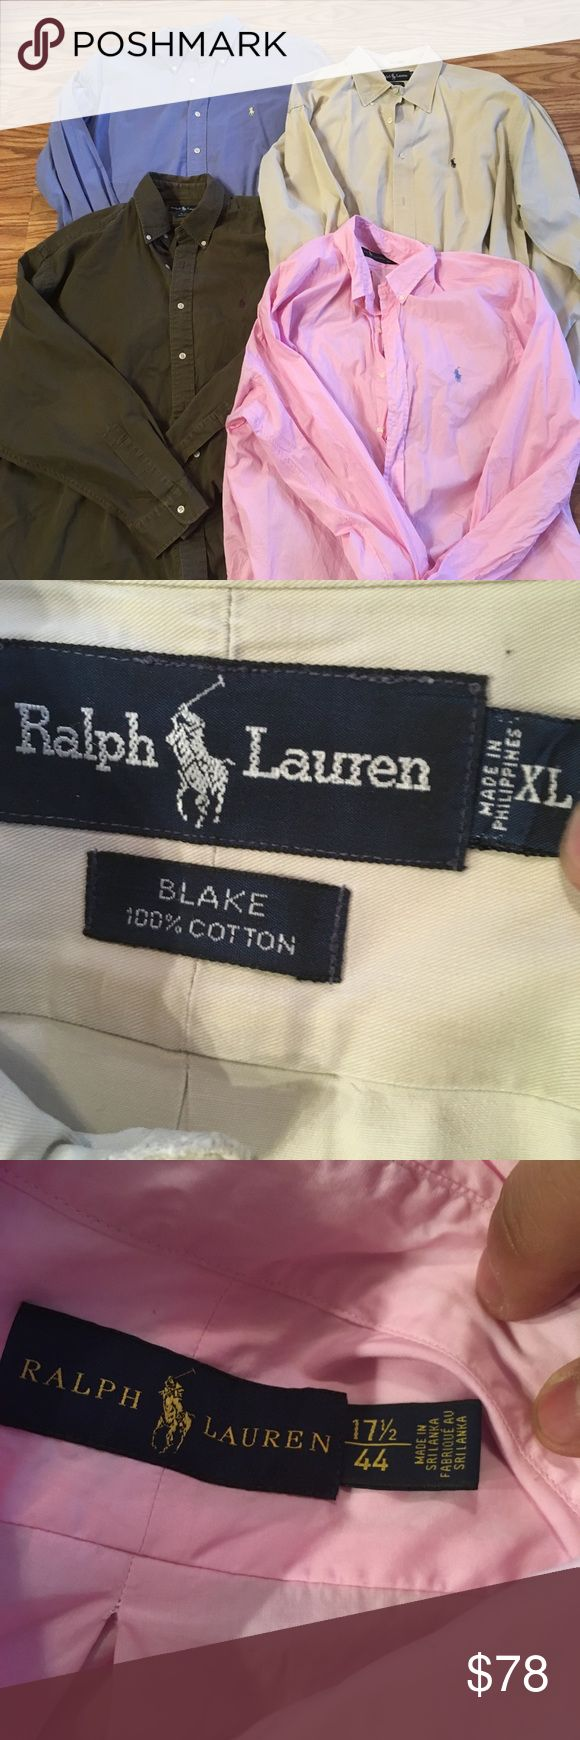 🔥sale👕 Lot Of 4 Polo Ralph Lauren Button Shirts You are purchasing four Polo Ralph Lauren button down/dress shirts. These retail for 125 each. Dry cleaned professionally.  They are in excellent condition. 9.5/10. They are size extra large. One is pink  one is blue  one is dark green/Olive  and the last one is light tan/cream.  Best offer wins :) Polo by Ralph Lauren Shirts Casual Button Down Shirts